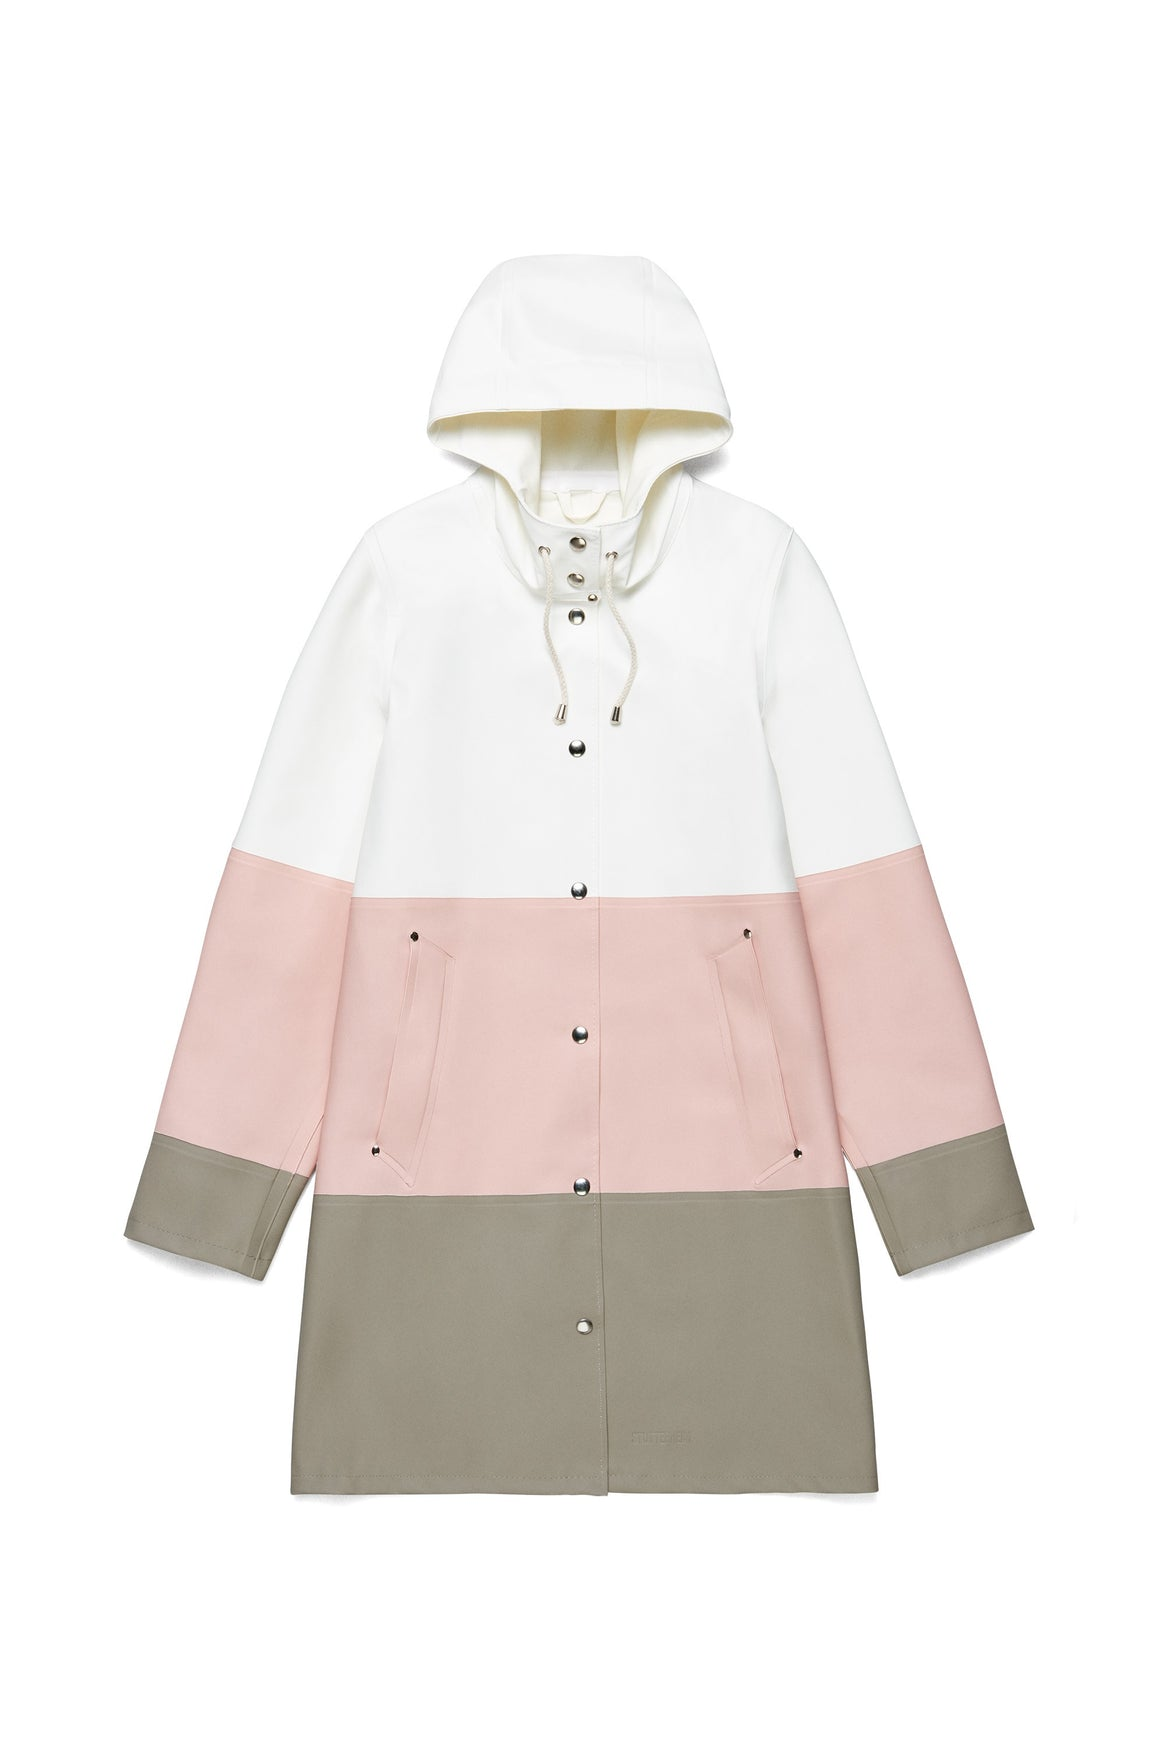 Stutterheim Mosebacke pale pink stripe raincoat | pipe and row boutique